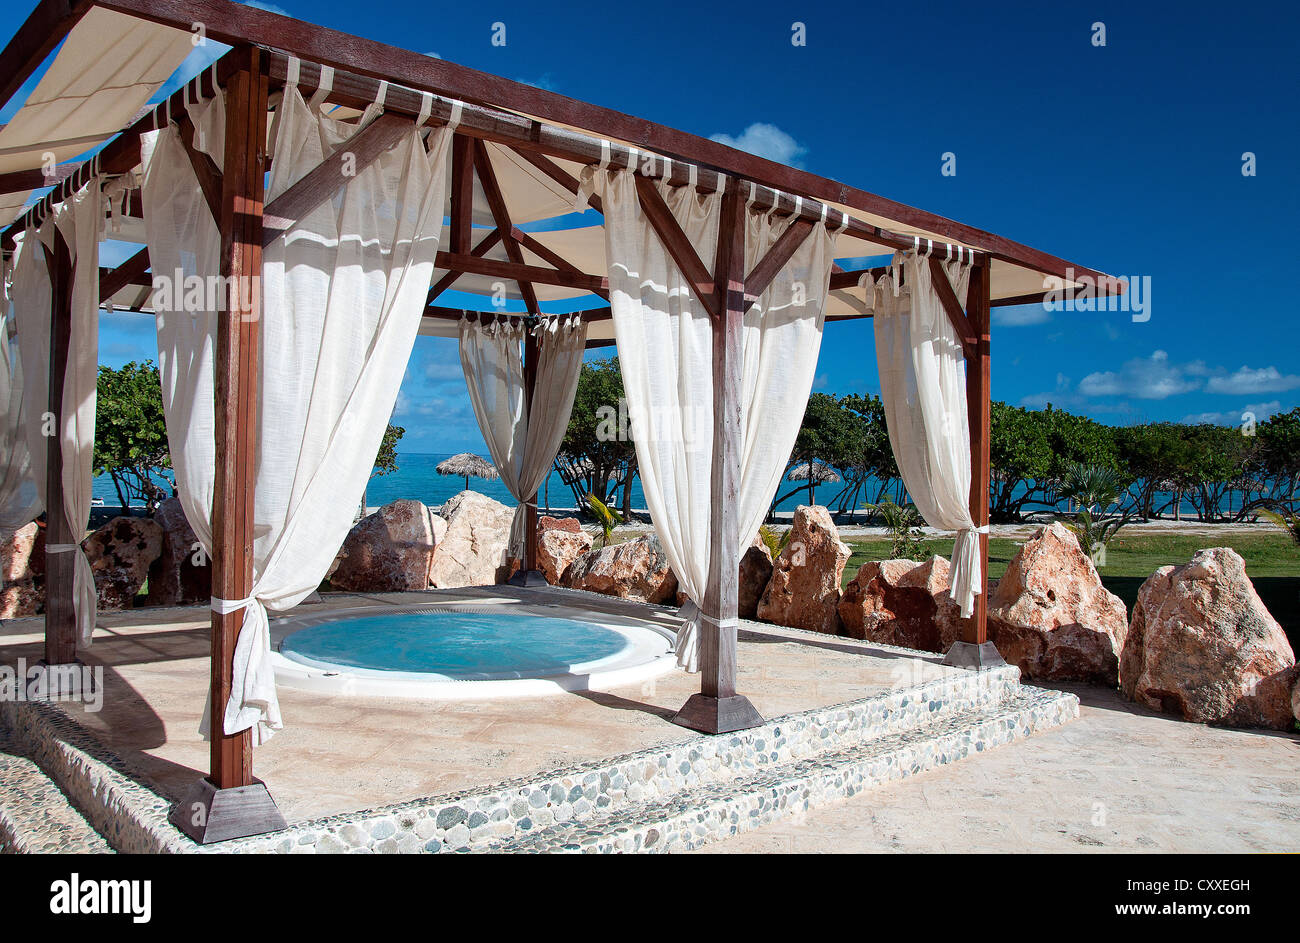 Luxury SPA resort with jacuzzi in the open air Stock Photo, Royalty ...